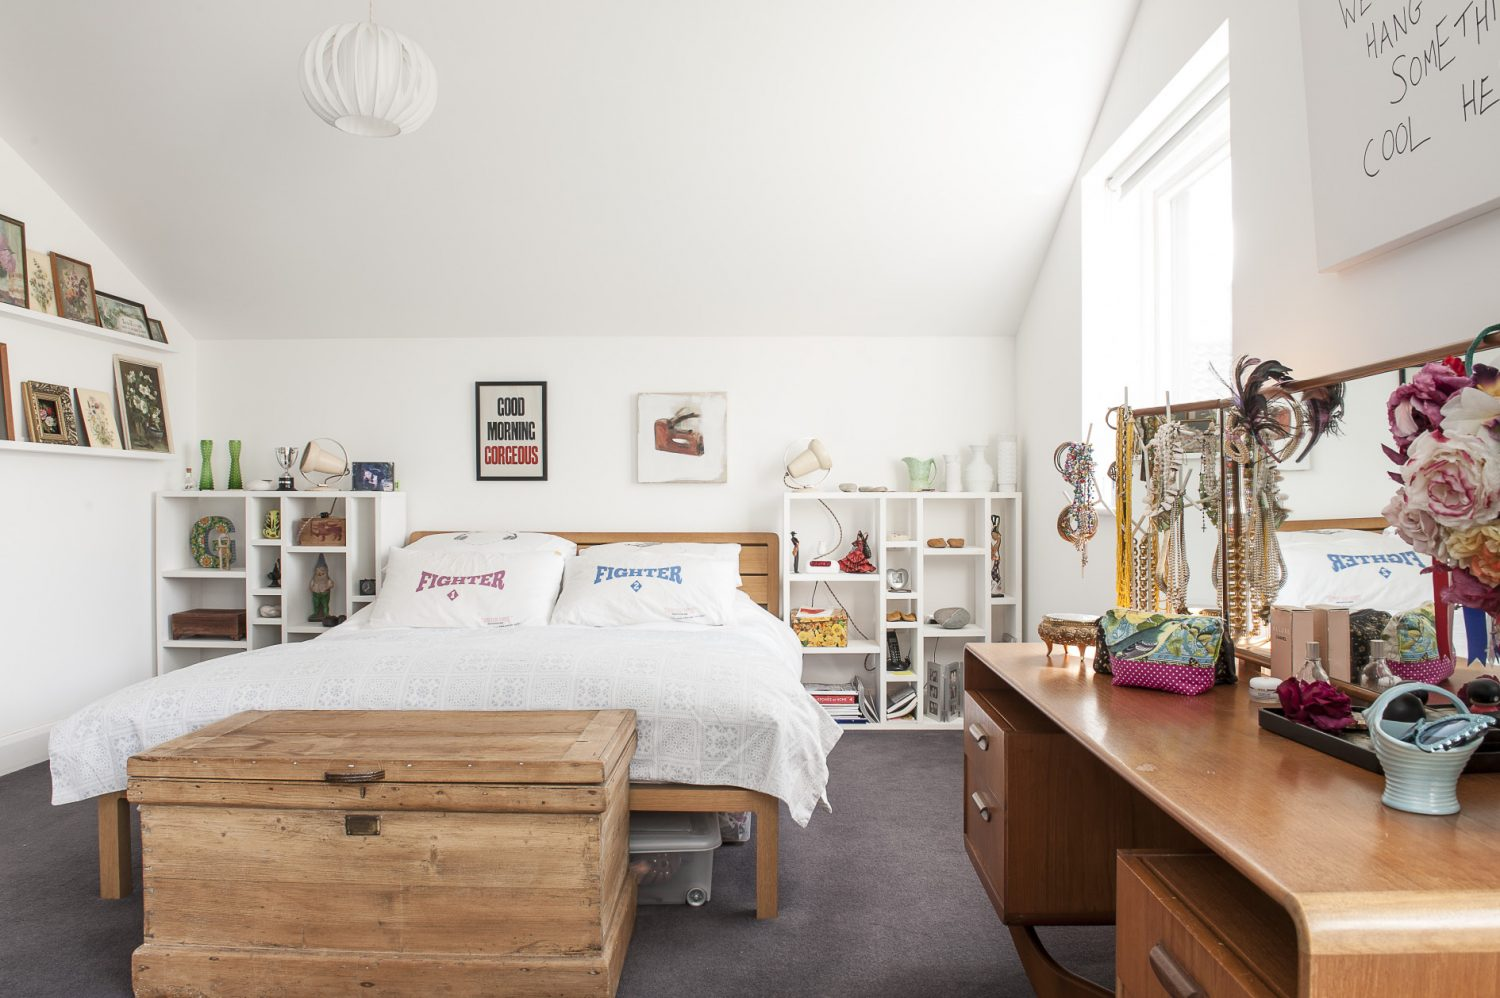 The master bedroom is a spacious haven, with lots of the couple's humorous touches